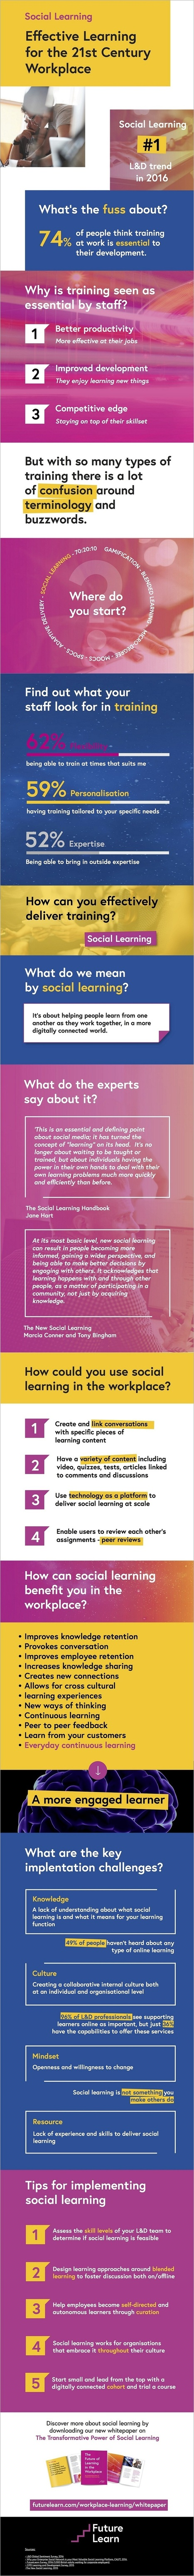 Social Learning: Effective Learning for the 21st Century Workplace Infographic - e-Learning Infographics | Social U-Learning | Scoop.it